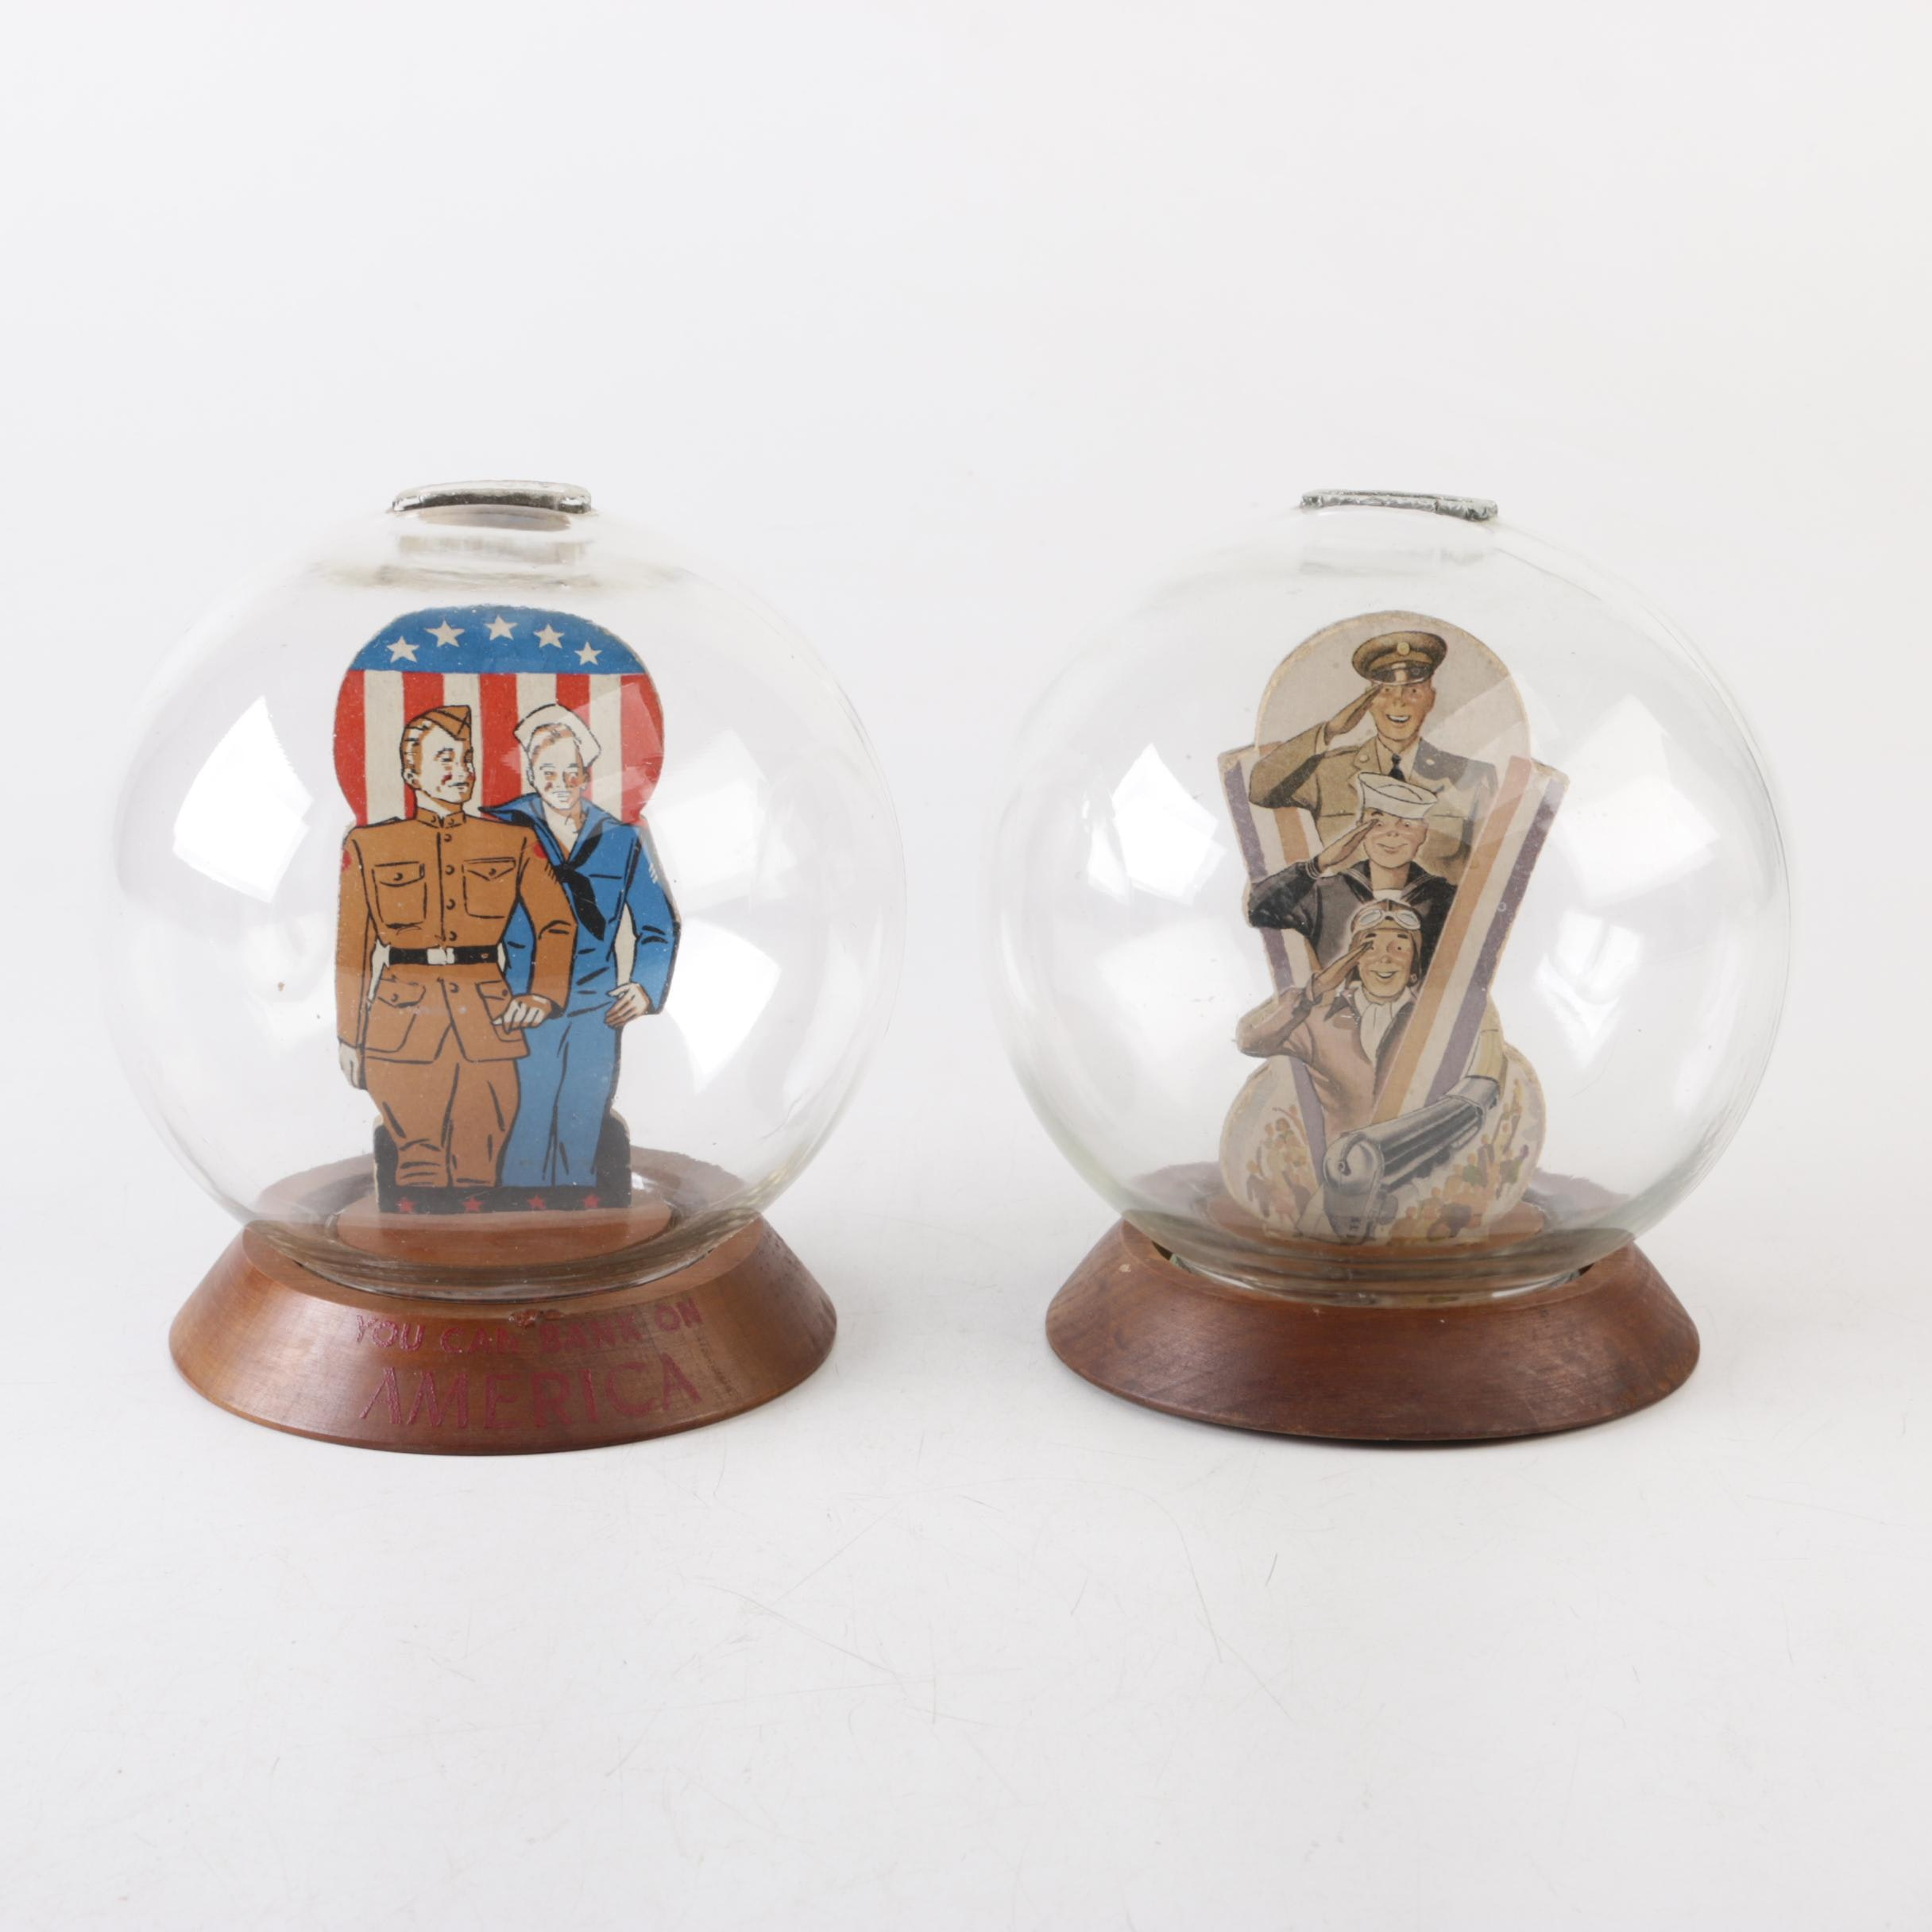 WWII Era Vic Moran Military-Themed Bubble Banks